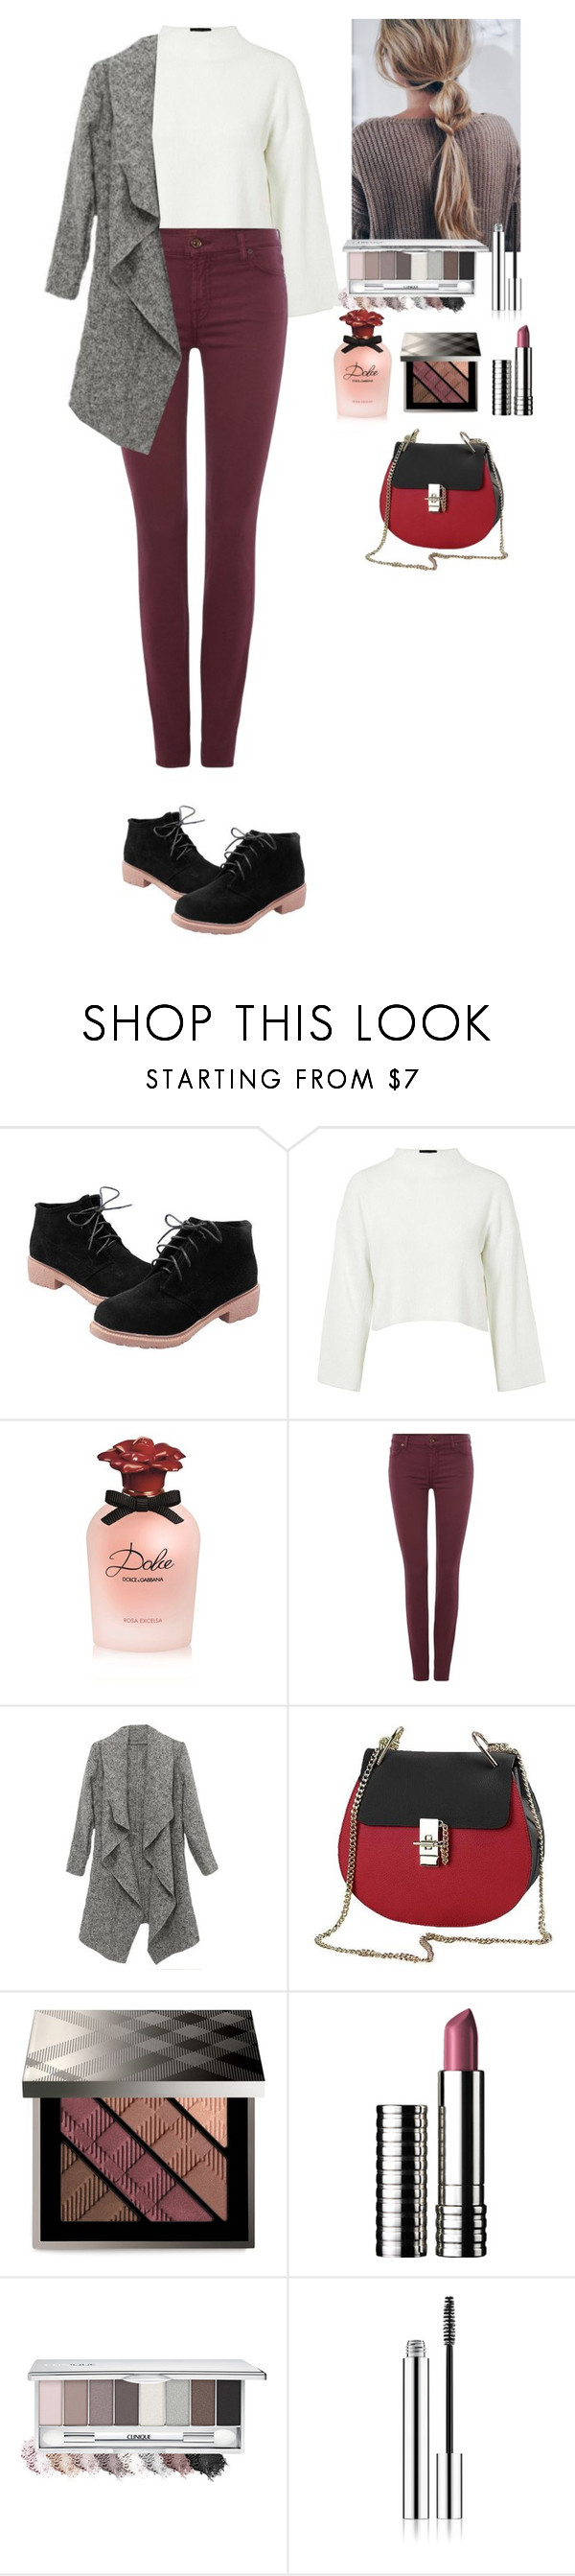 """""""Streetstyle TOMTOP"""" by eliza-redkina ❤ liked on Polyvore featuring Topshop, Dolce&Gabbana, 7 For All Mankind, Burberry, vintage, StreetStyle, outfit, like, look and tomtop"""